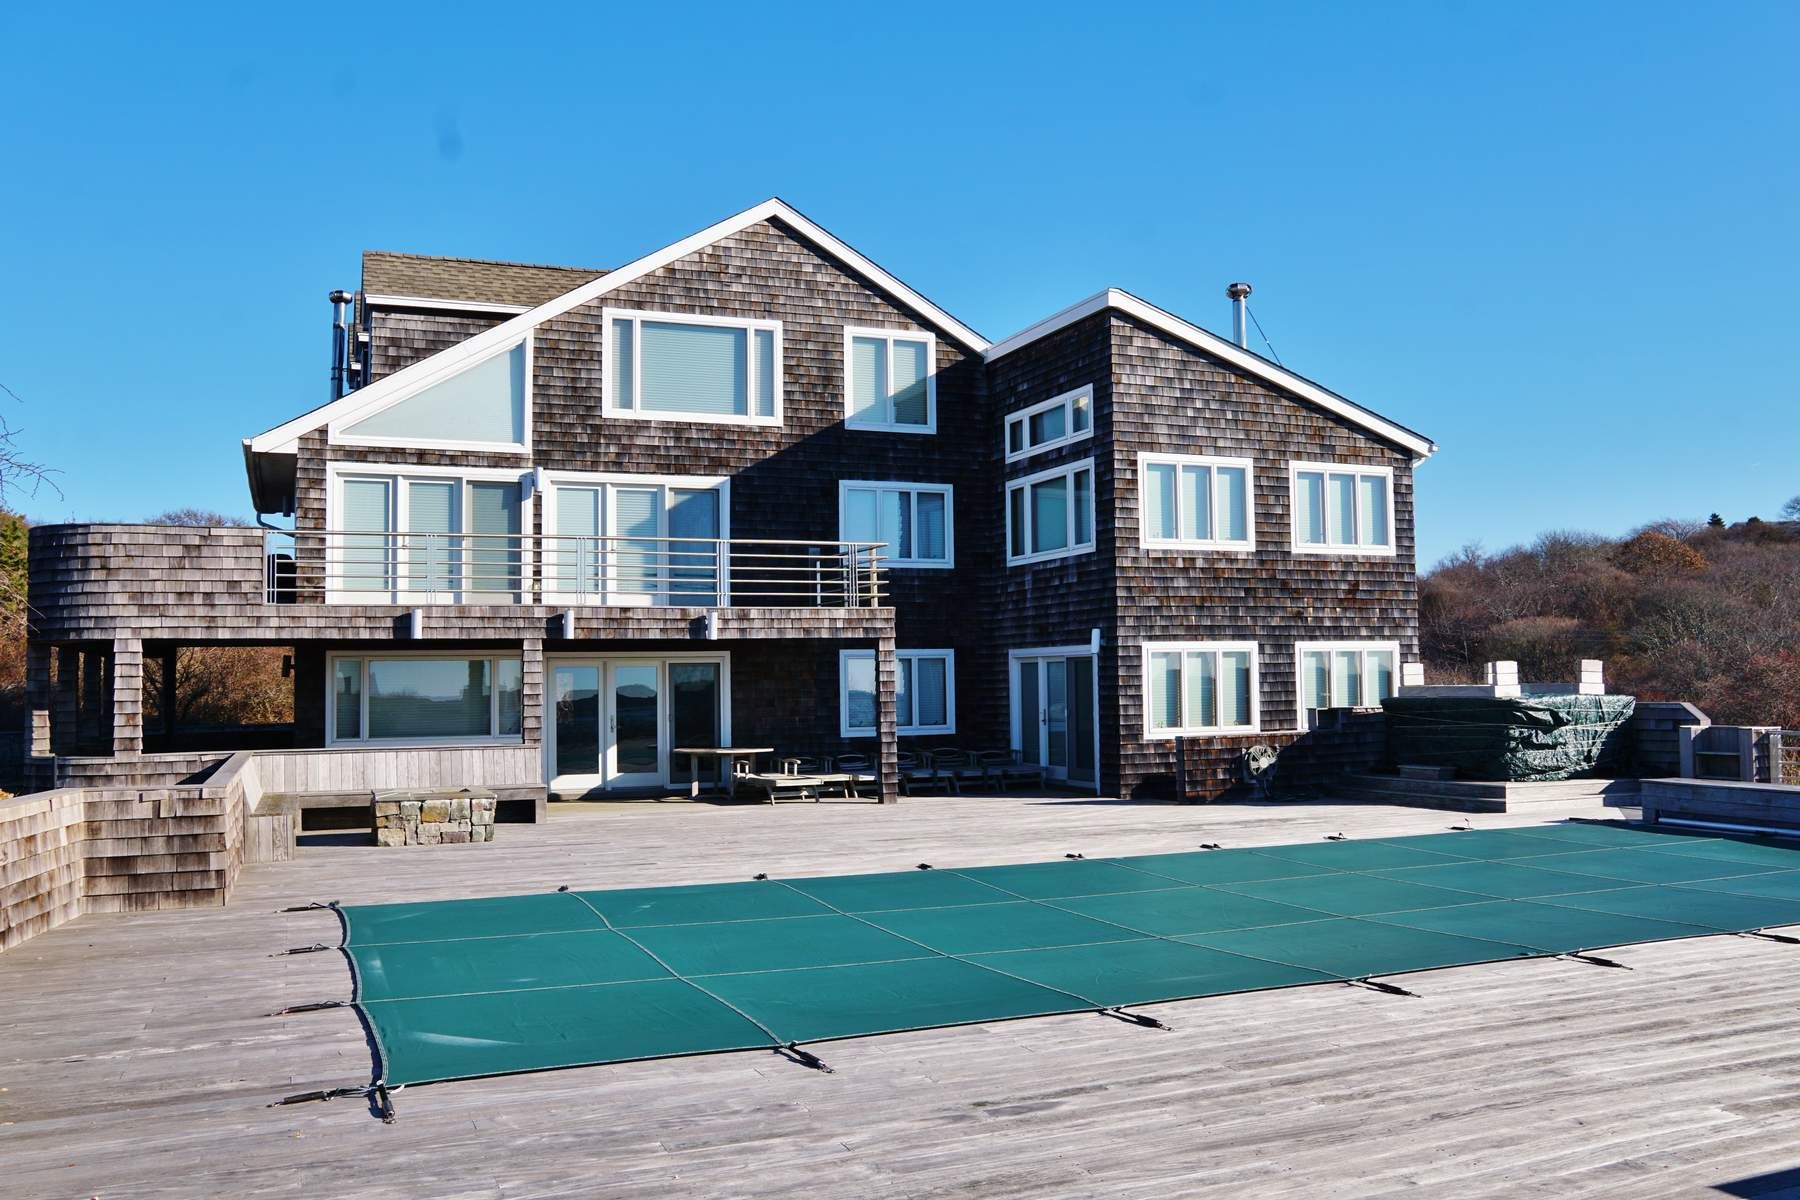 Single Family Home for Rent at PRISTINE TRADITIONAL Montauk, New York 11954 United States